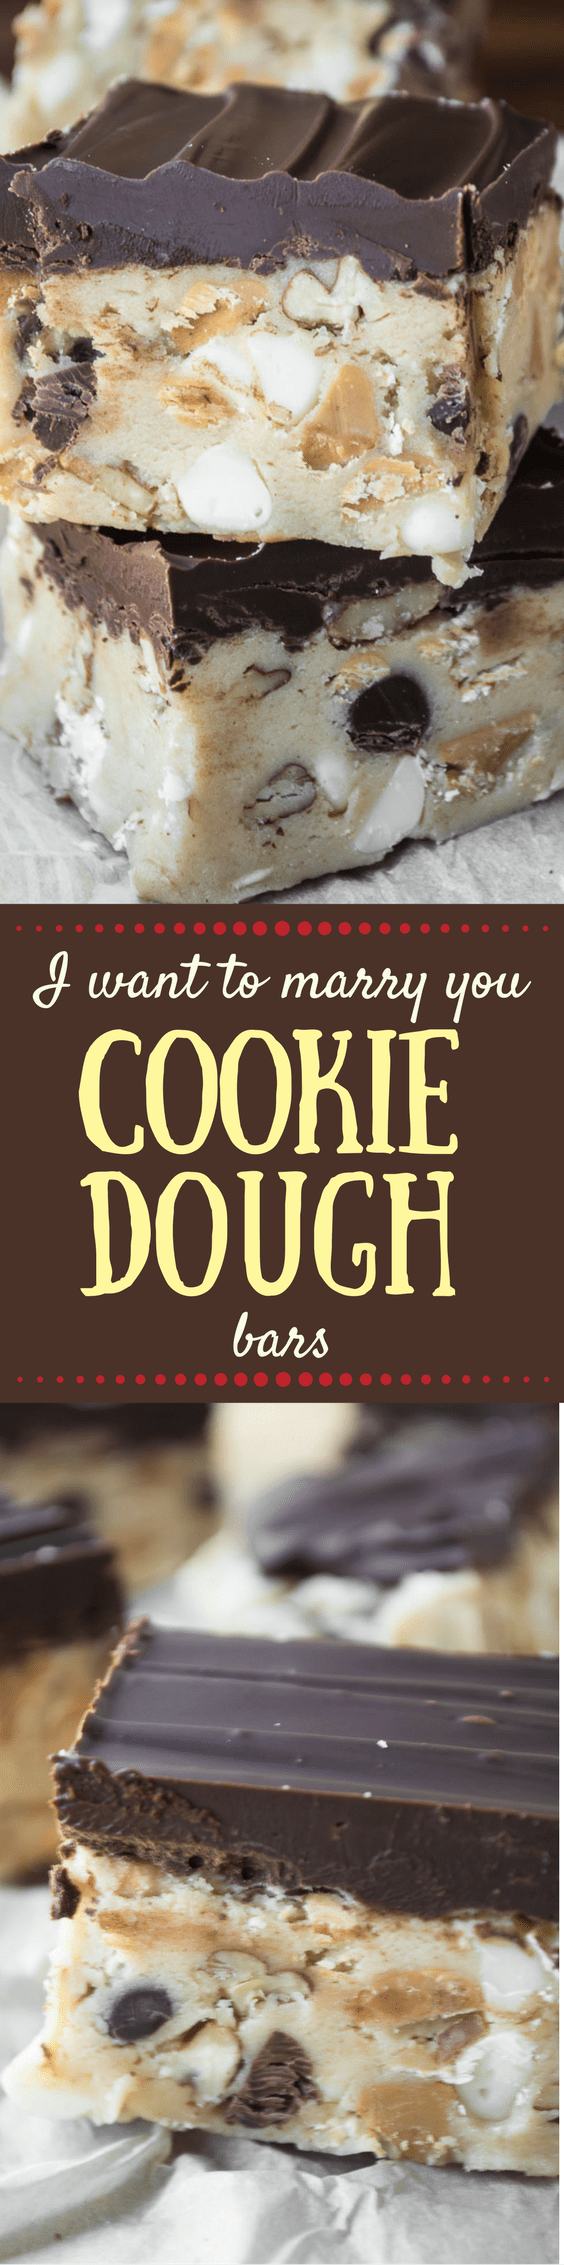 I Want To Marry You Cookie Dough Bars are chocked full of chocolate chips, white chocolate chips, peanut butter chips, oats, and pecans. There's a little bit of everything in there, no wonder people tend to get romantic around them. #cookiedough #cookies #chocolatechipcookiedough #rawcookiedough #dessert #bars #chocolate